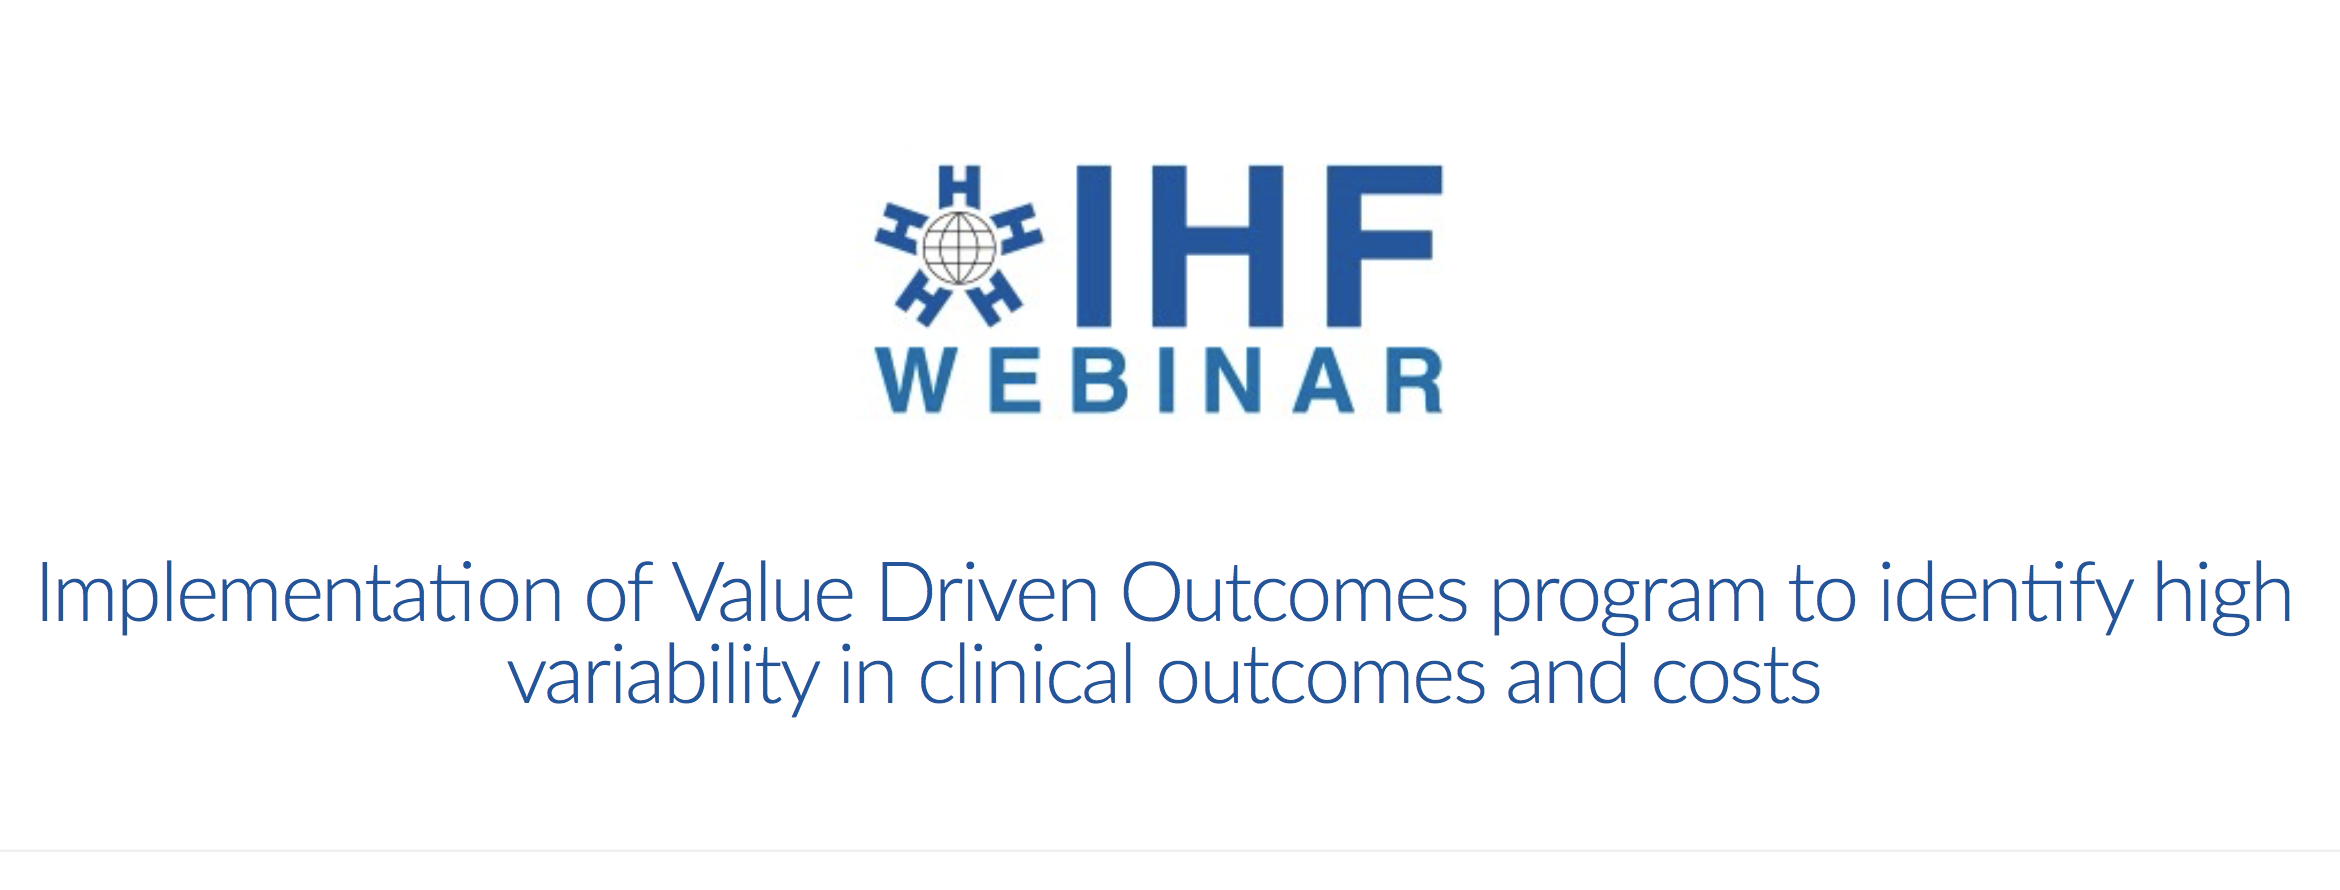 Webinar | Implementation of Value Driven Outcomes program to identify high variability in clinical outcomes and costs